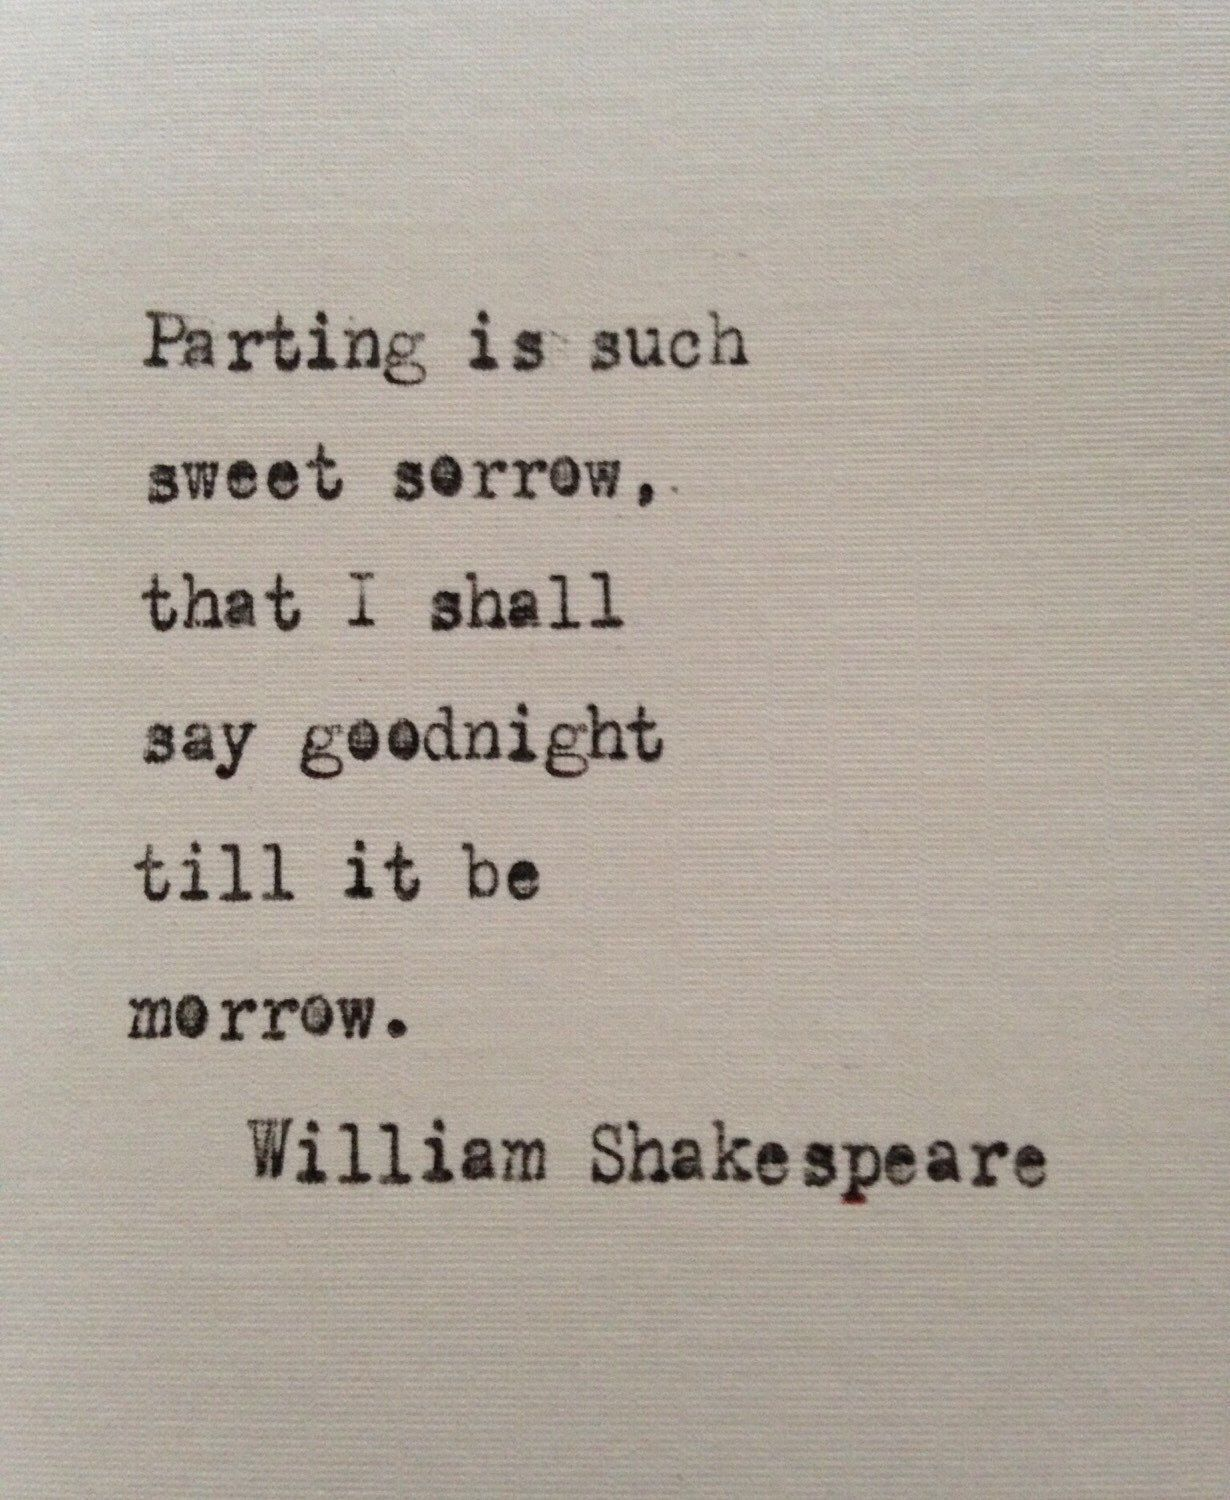 William Shakespeare Romeo and Juliet quote typed on ...William Shakespeare Romeo And Juliet Quotes